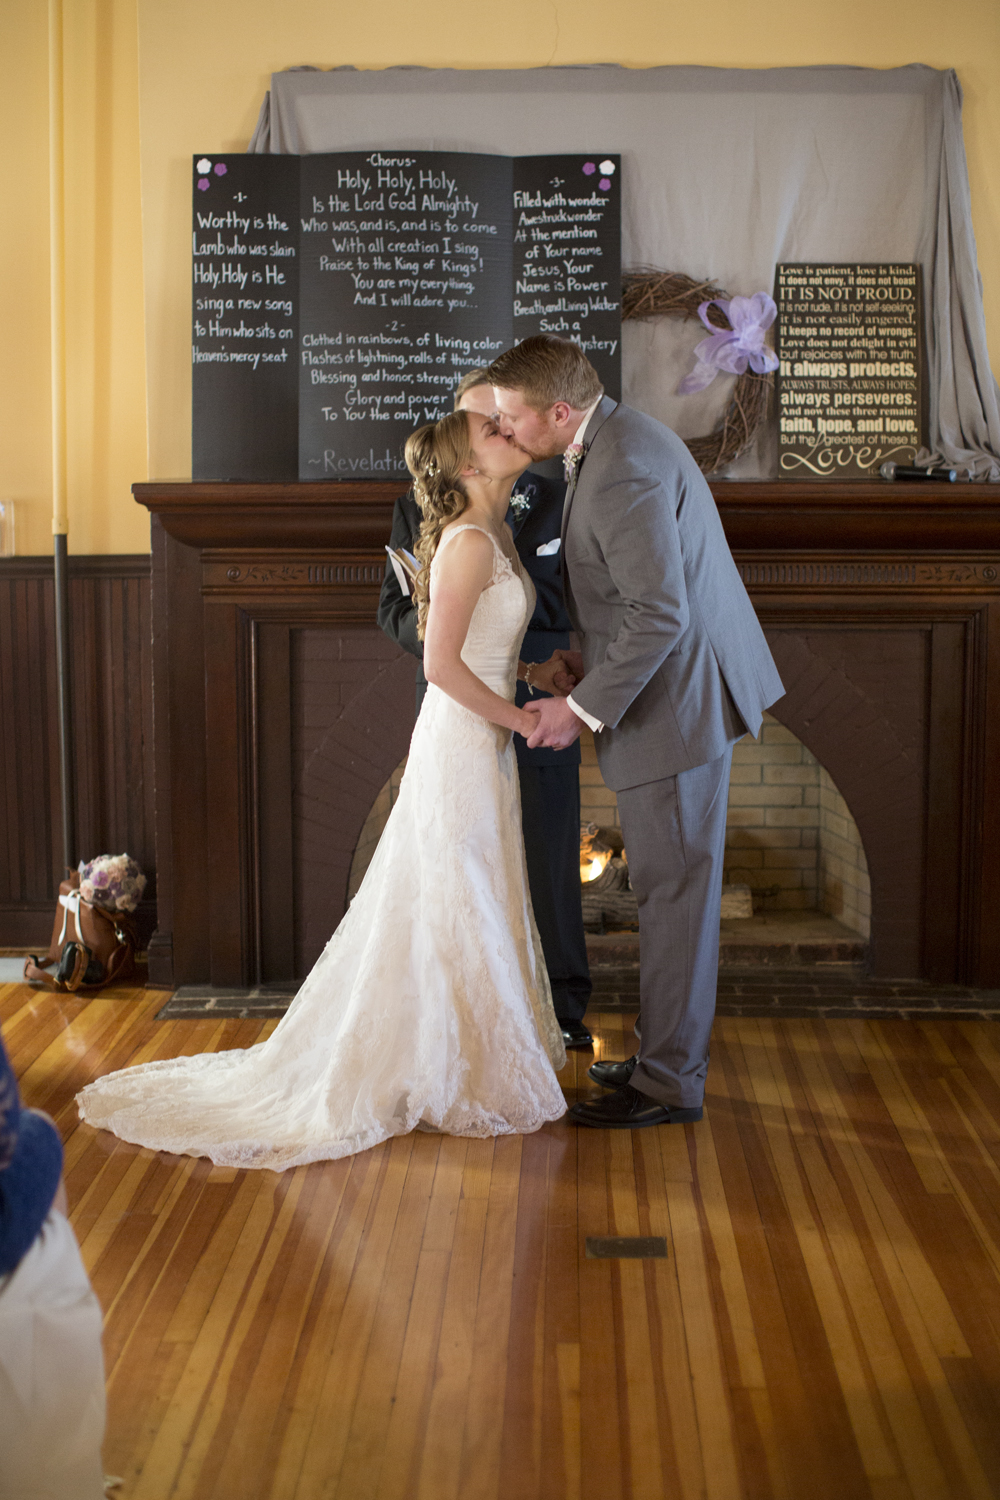 Bride and groom's first kiss at the altar of their indoor wedding ceremony in front of a fireplace